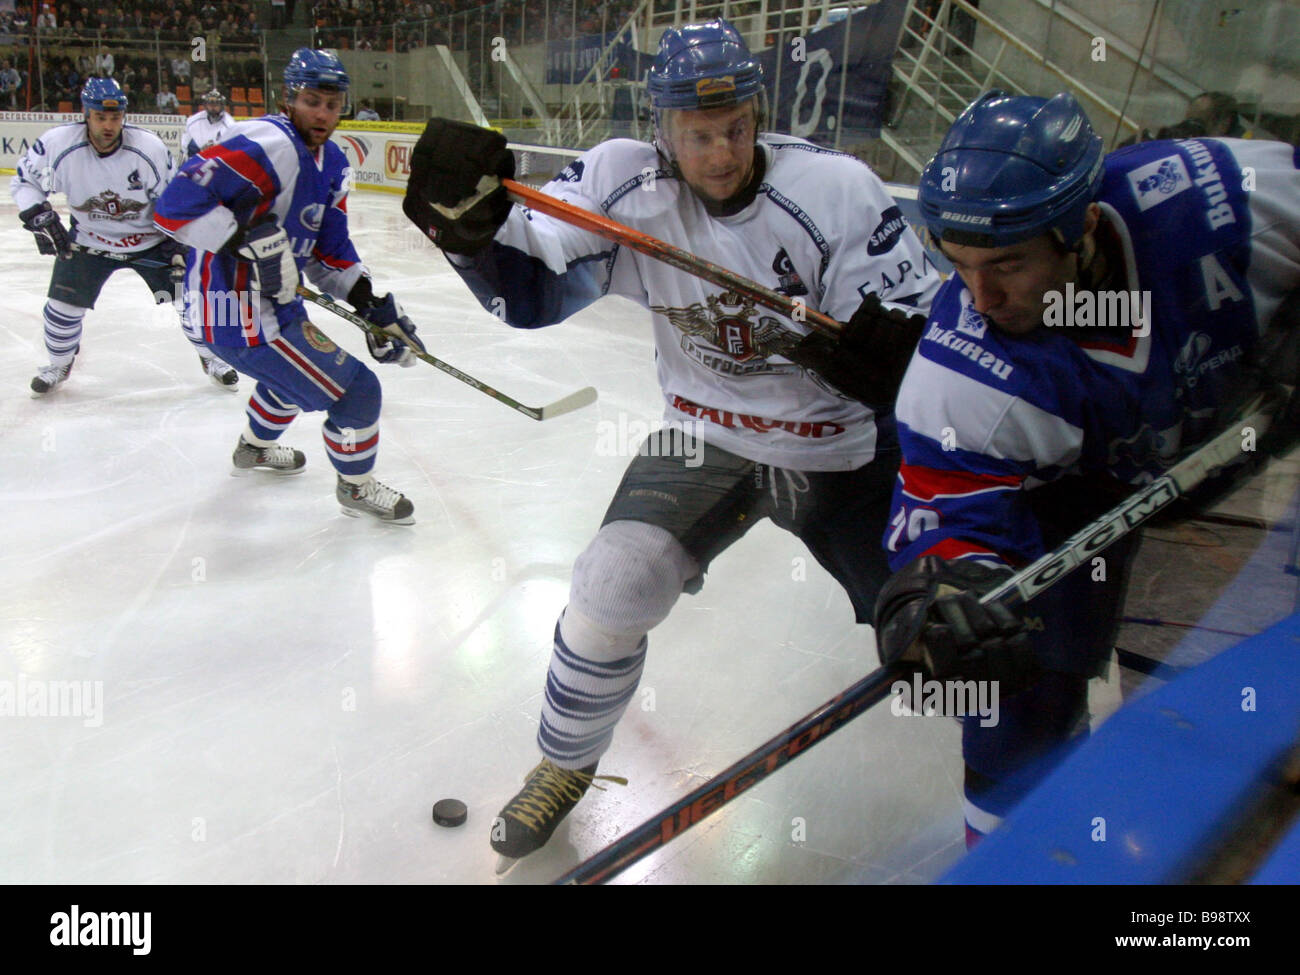 Dinamo Moscow vs Lada Togliatti playing the second game in the final playoff series of Russia s hockey championships - Stock Image